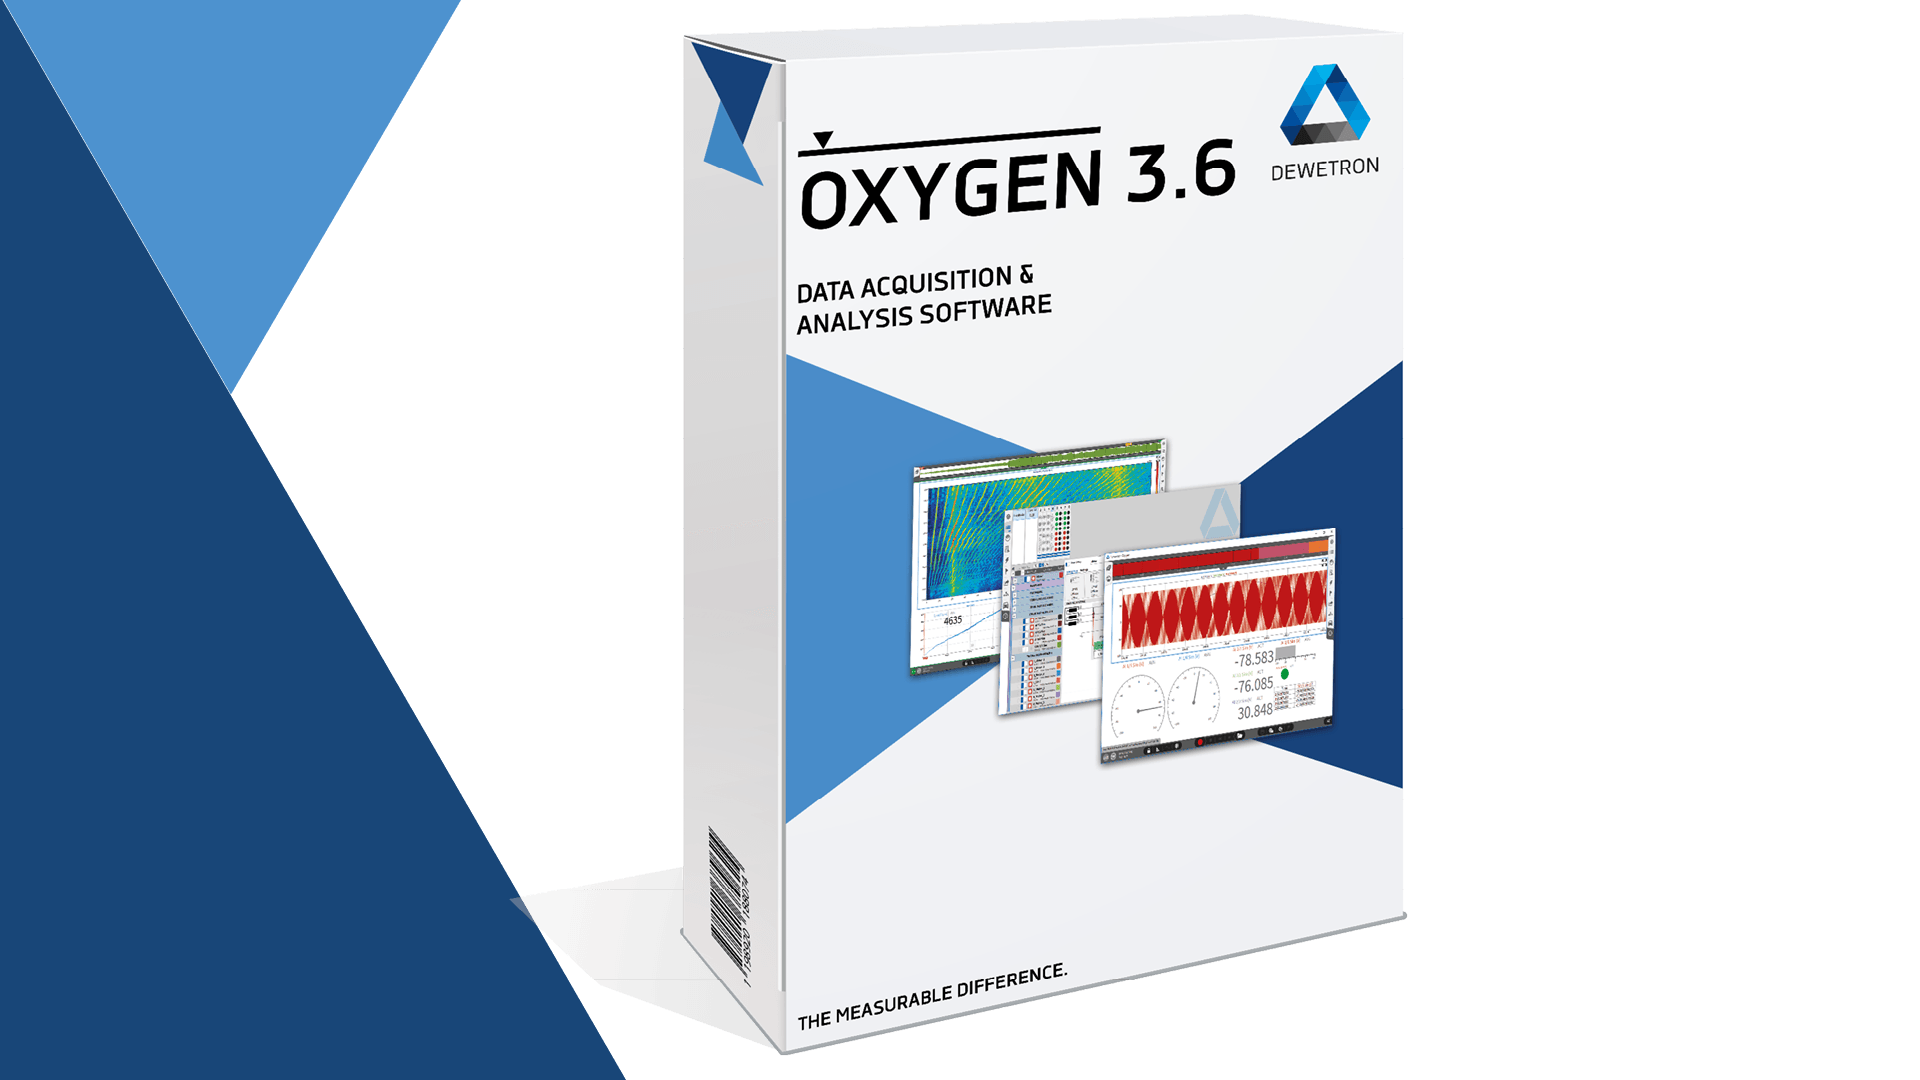 Psophometric analysis is now an integral part of the new Oxygen 3.6 version.